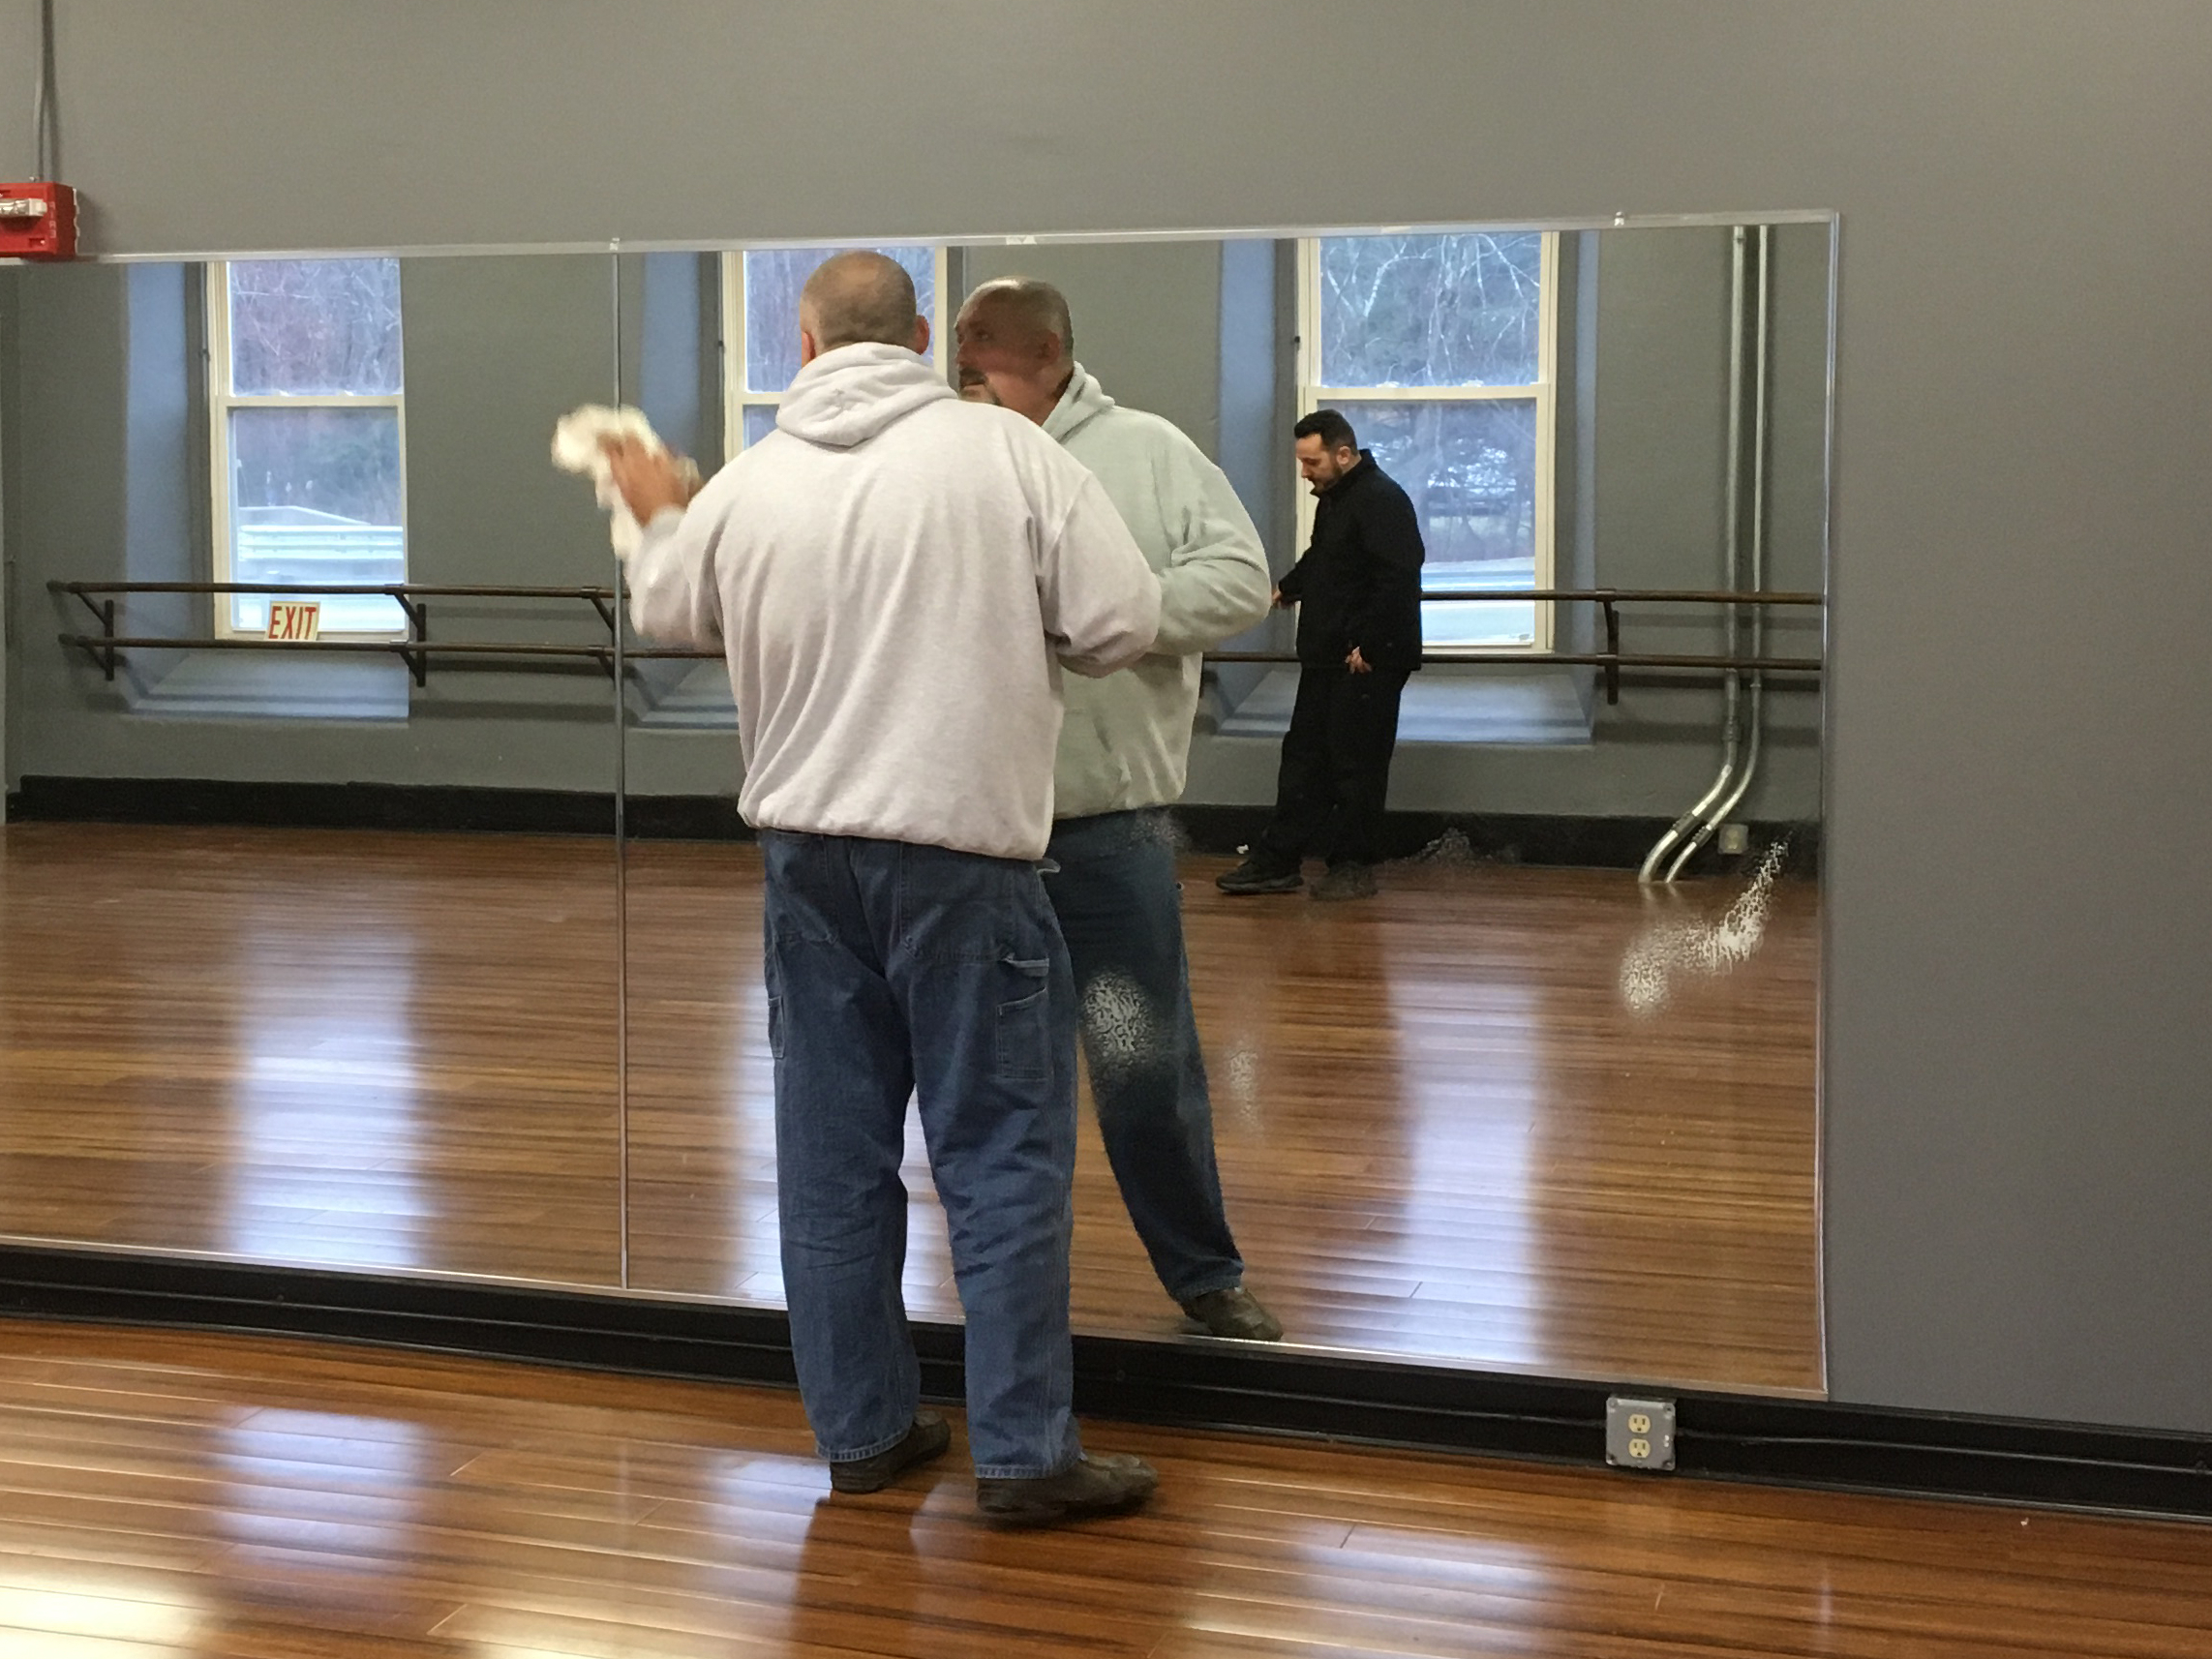 Custom Mirrors For Business Gym Wall Home In Ma Dance Studio Mirror In Newest Dance Studio Wall Mirrors (View 2 of 20)